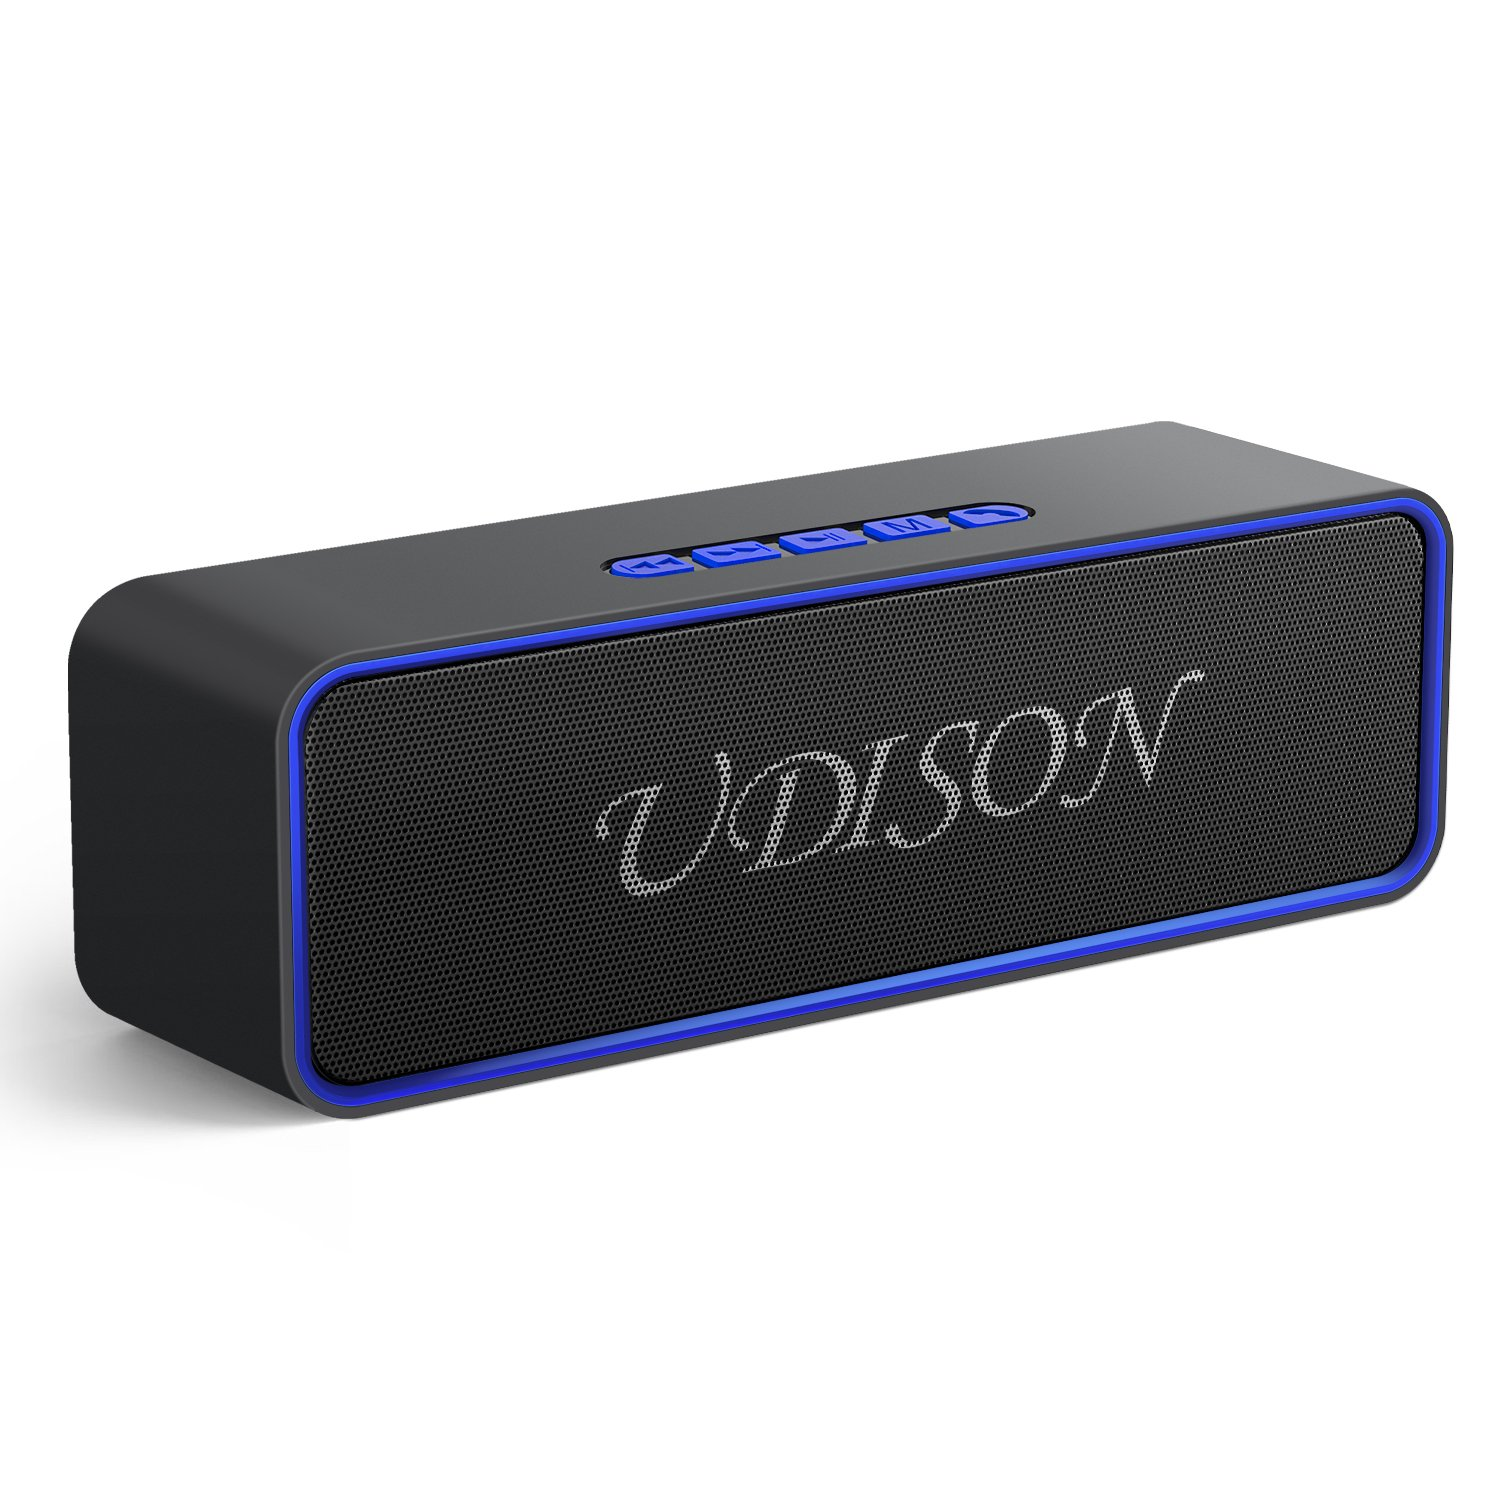 UDISON Portable Wireless Bluetooth 5.0 Speaker with 10W Loud